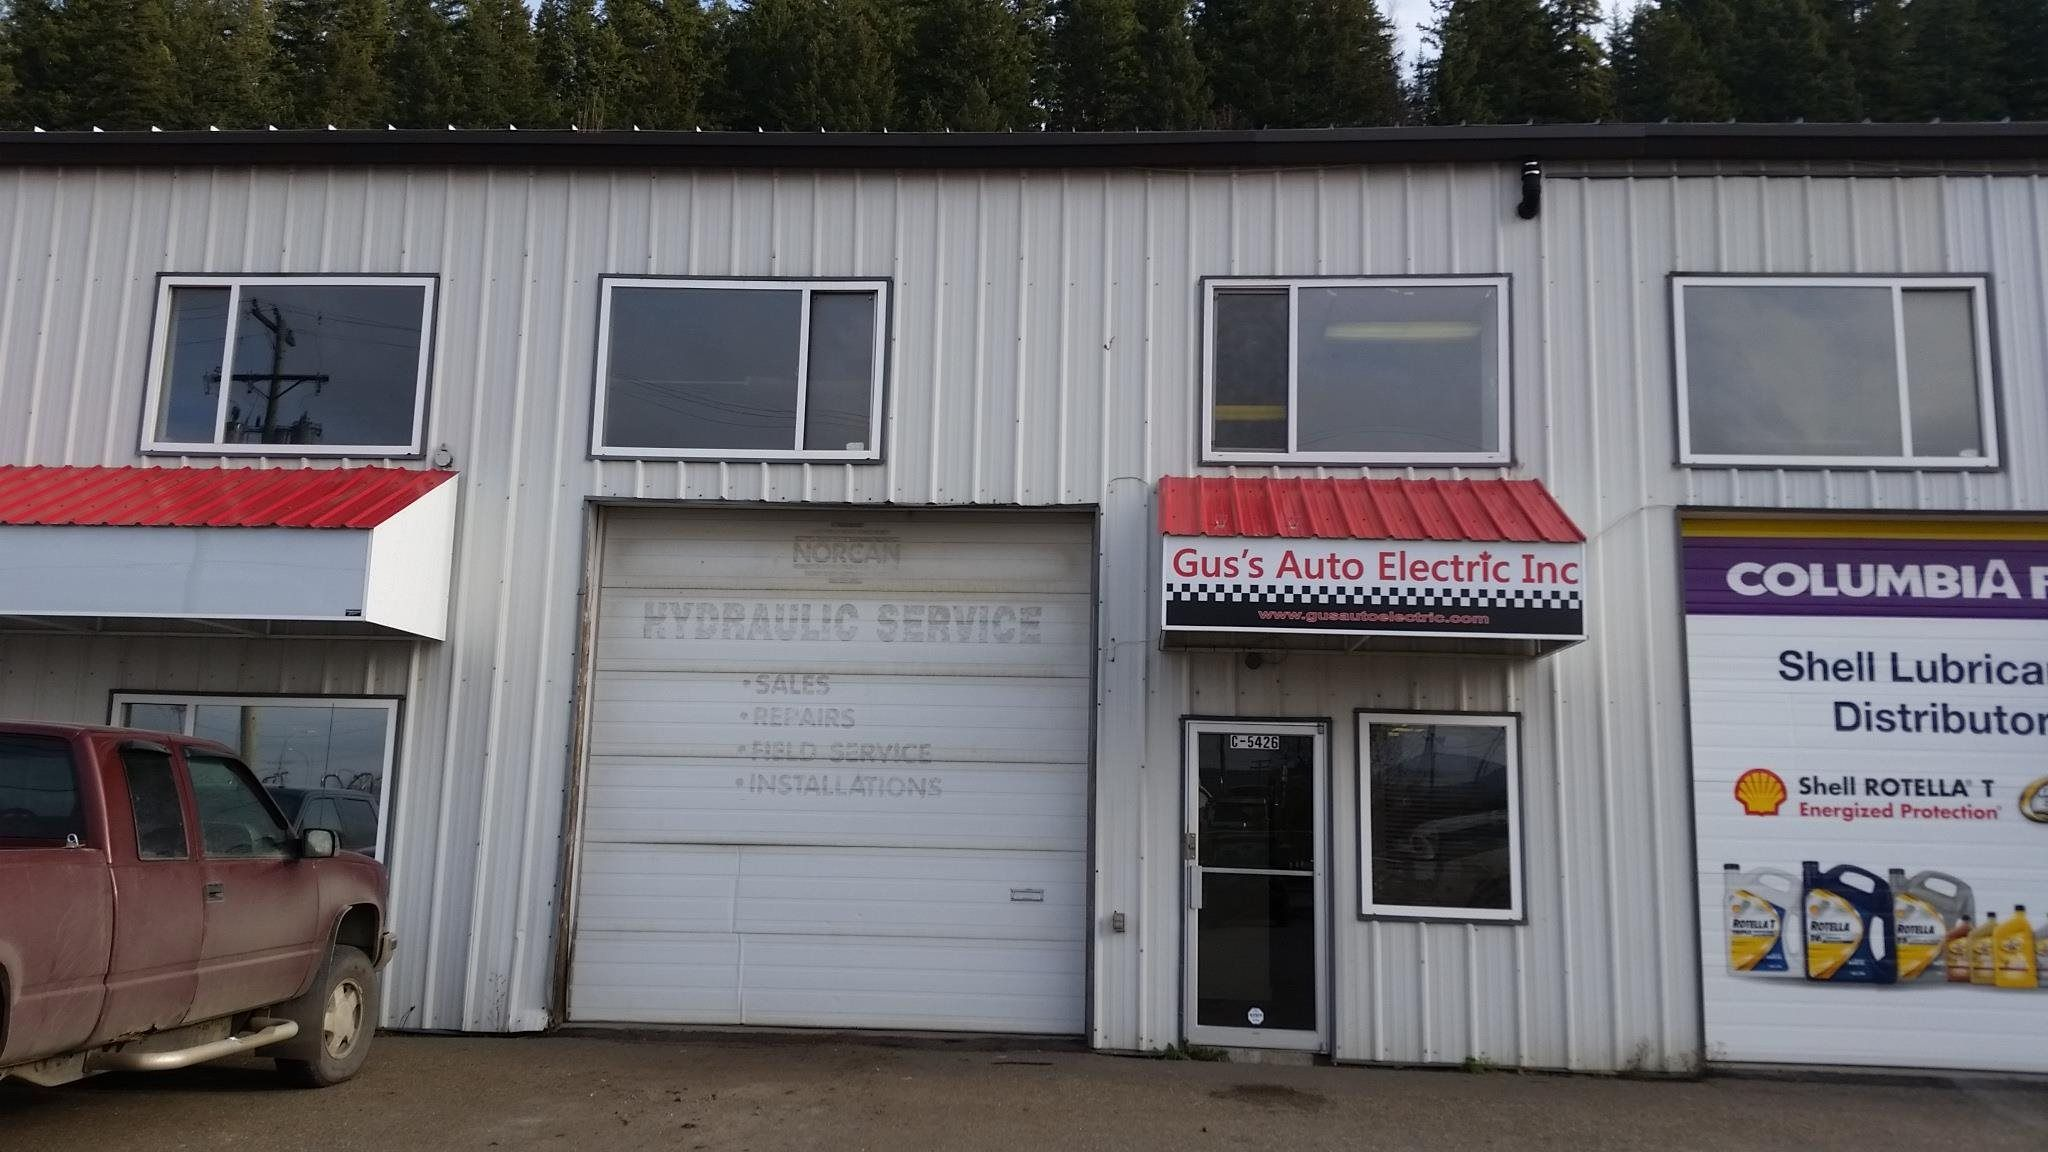 Main Photo: 5426C CONTINENTAL Way in Prince George: BCR Industrial Industrial for lease (PG City South East (Zone 75))  : MLS®# C8039539